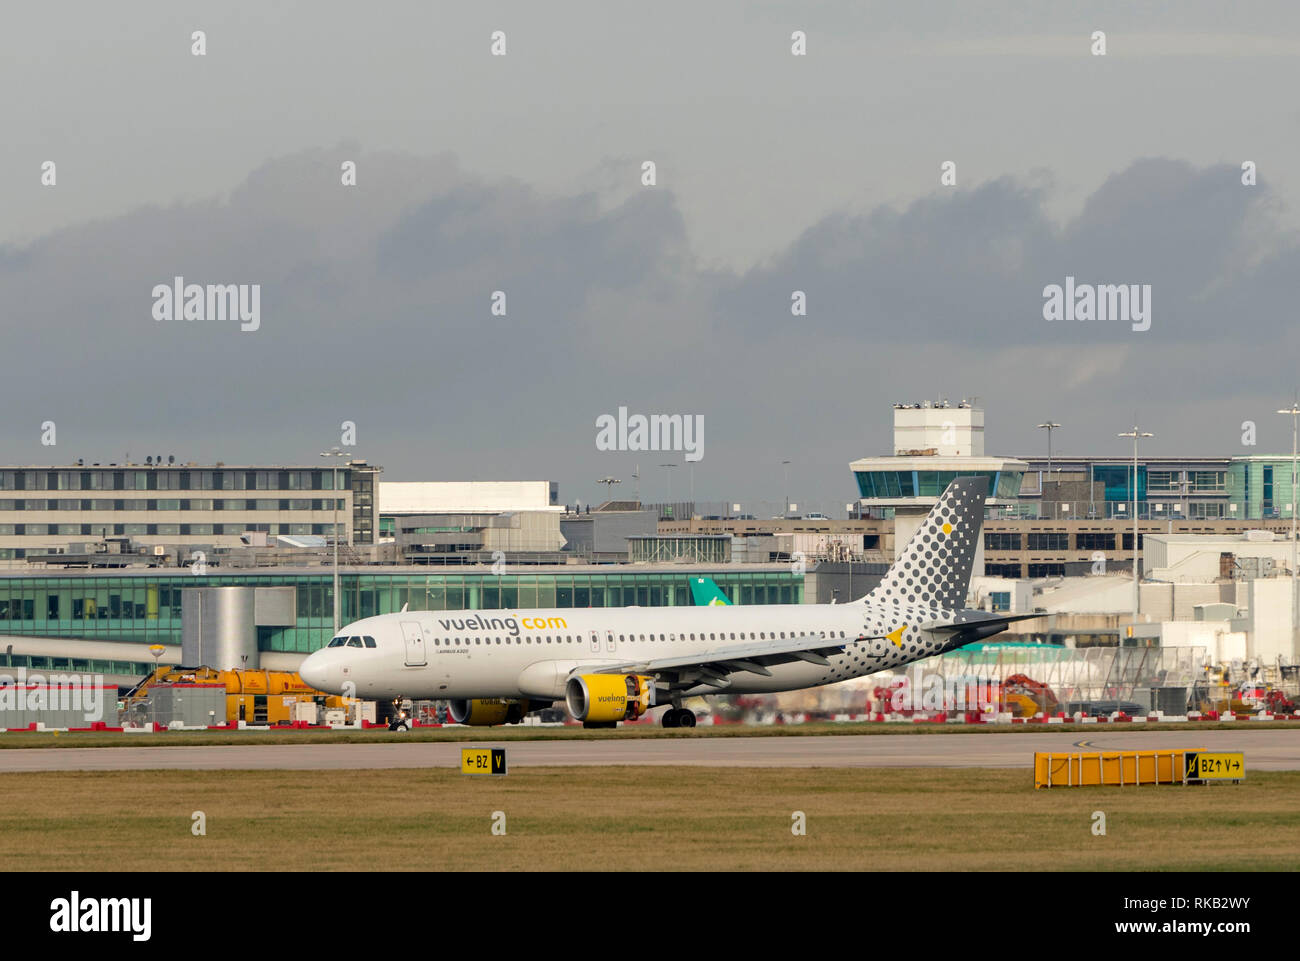 Vueling Airbus A320-214, EC-MBY, at Manchester Airport - Stock Image